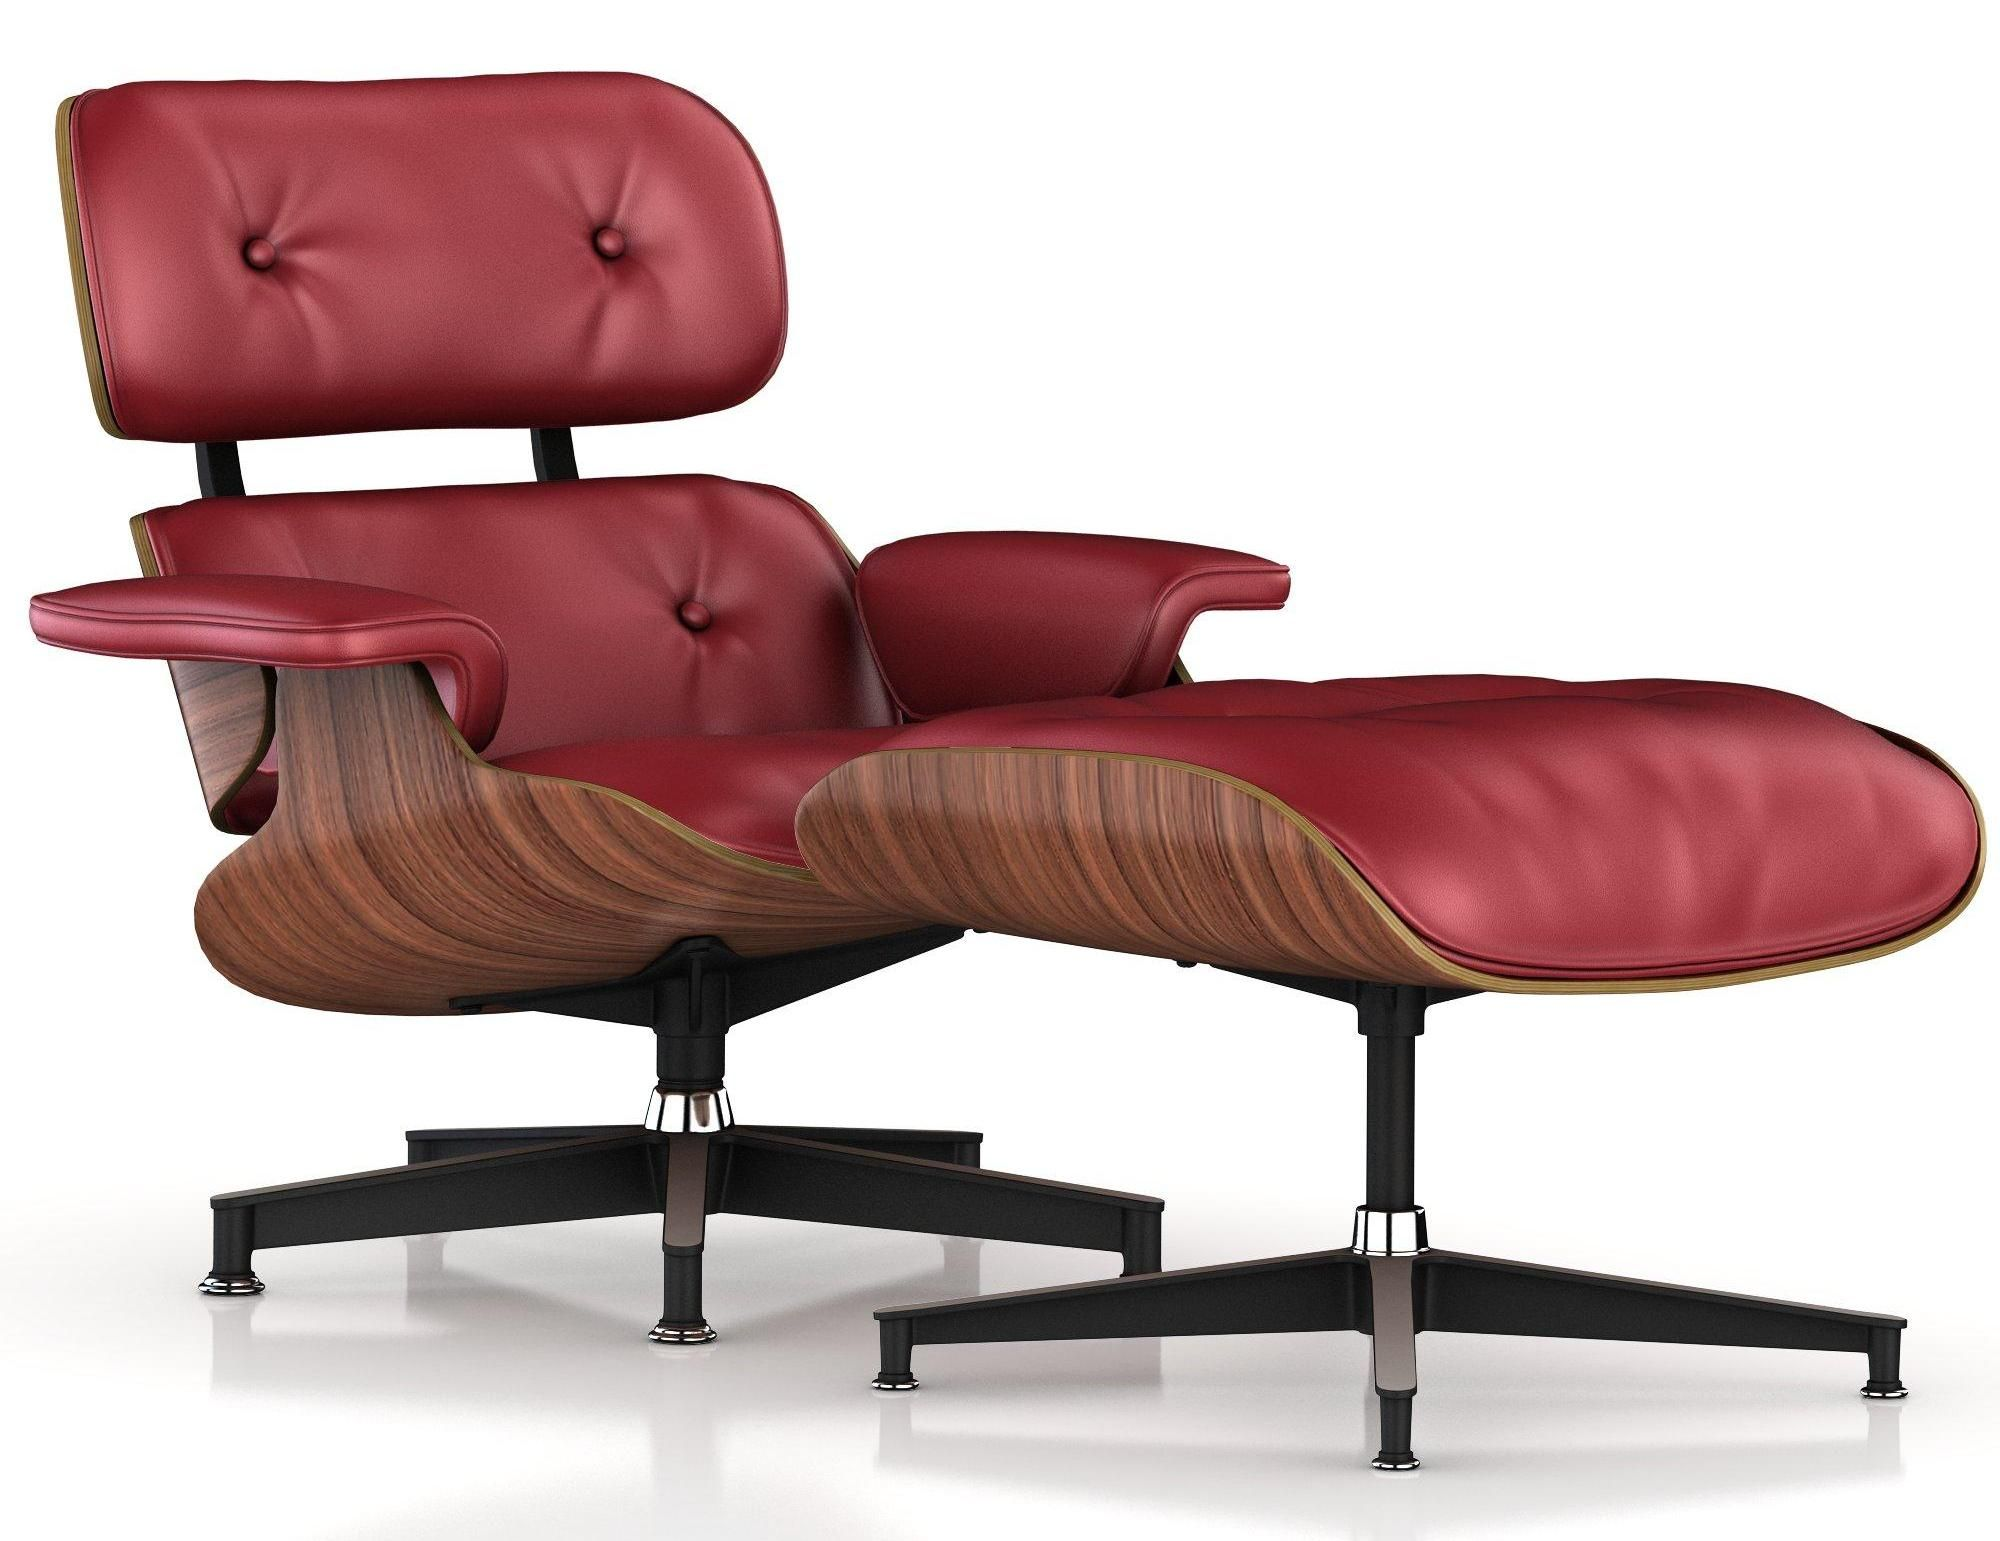 red eames lounge chair Google Search Eames lounge